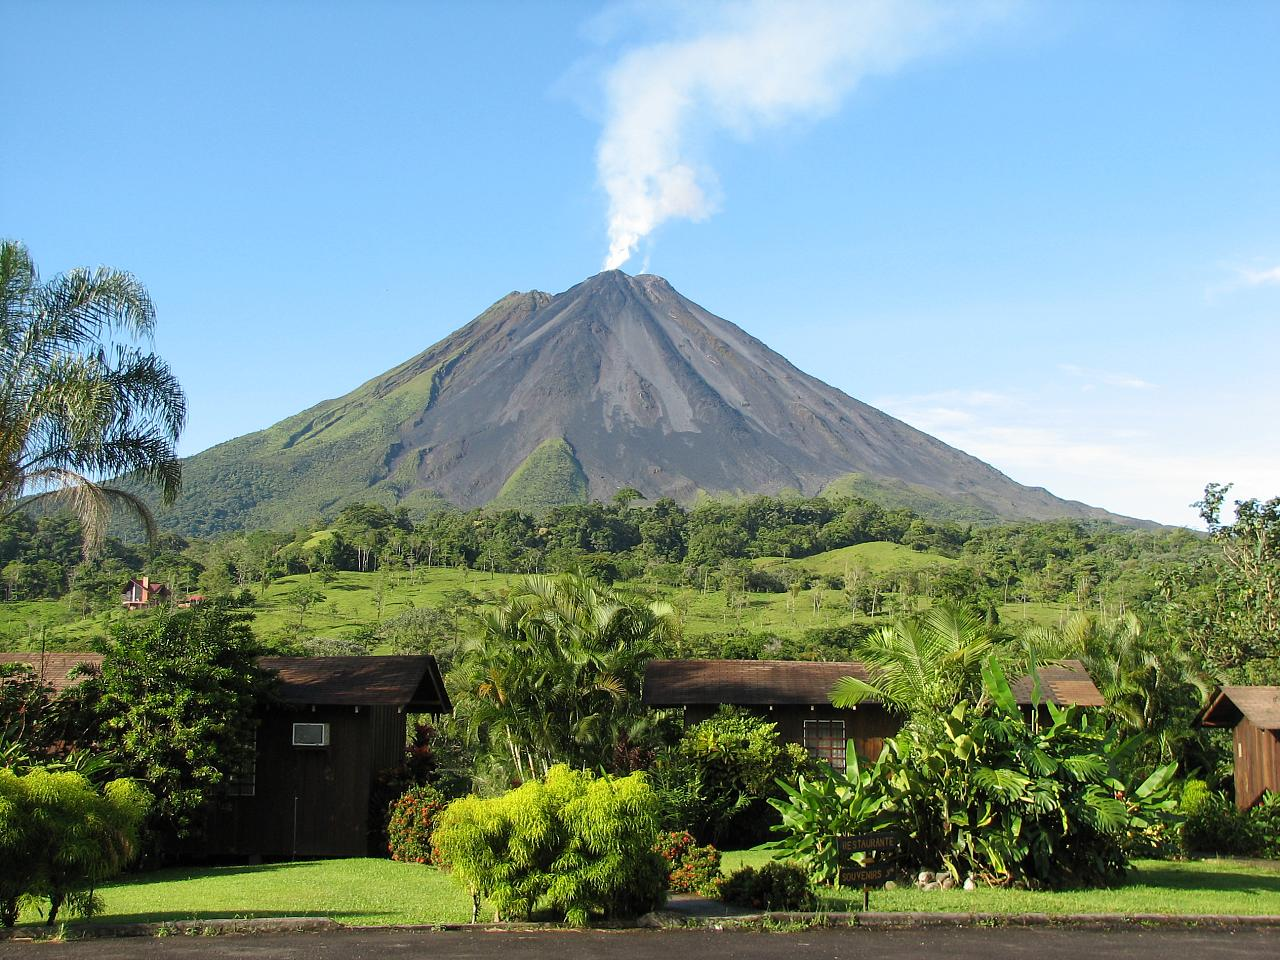 Le fameux volcan Arenal